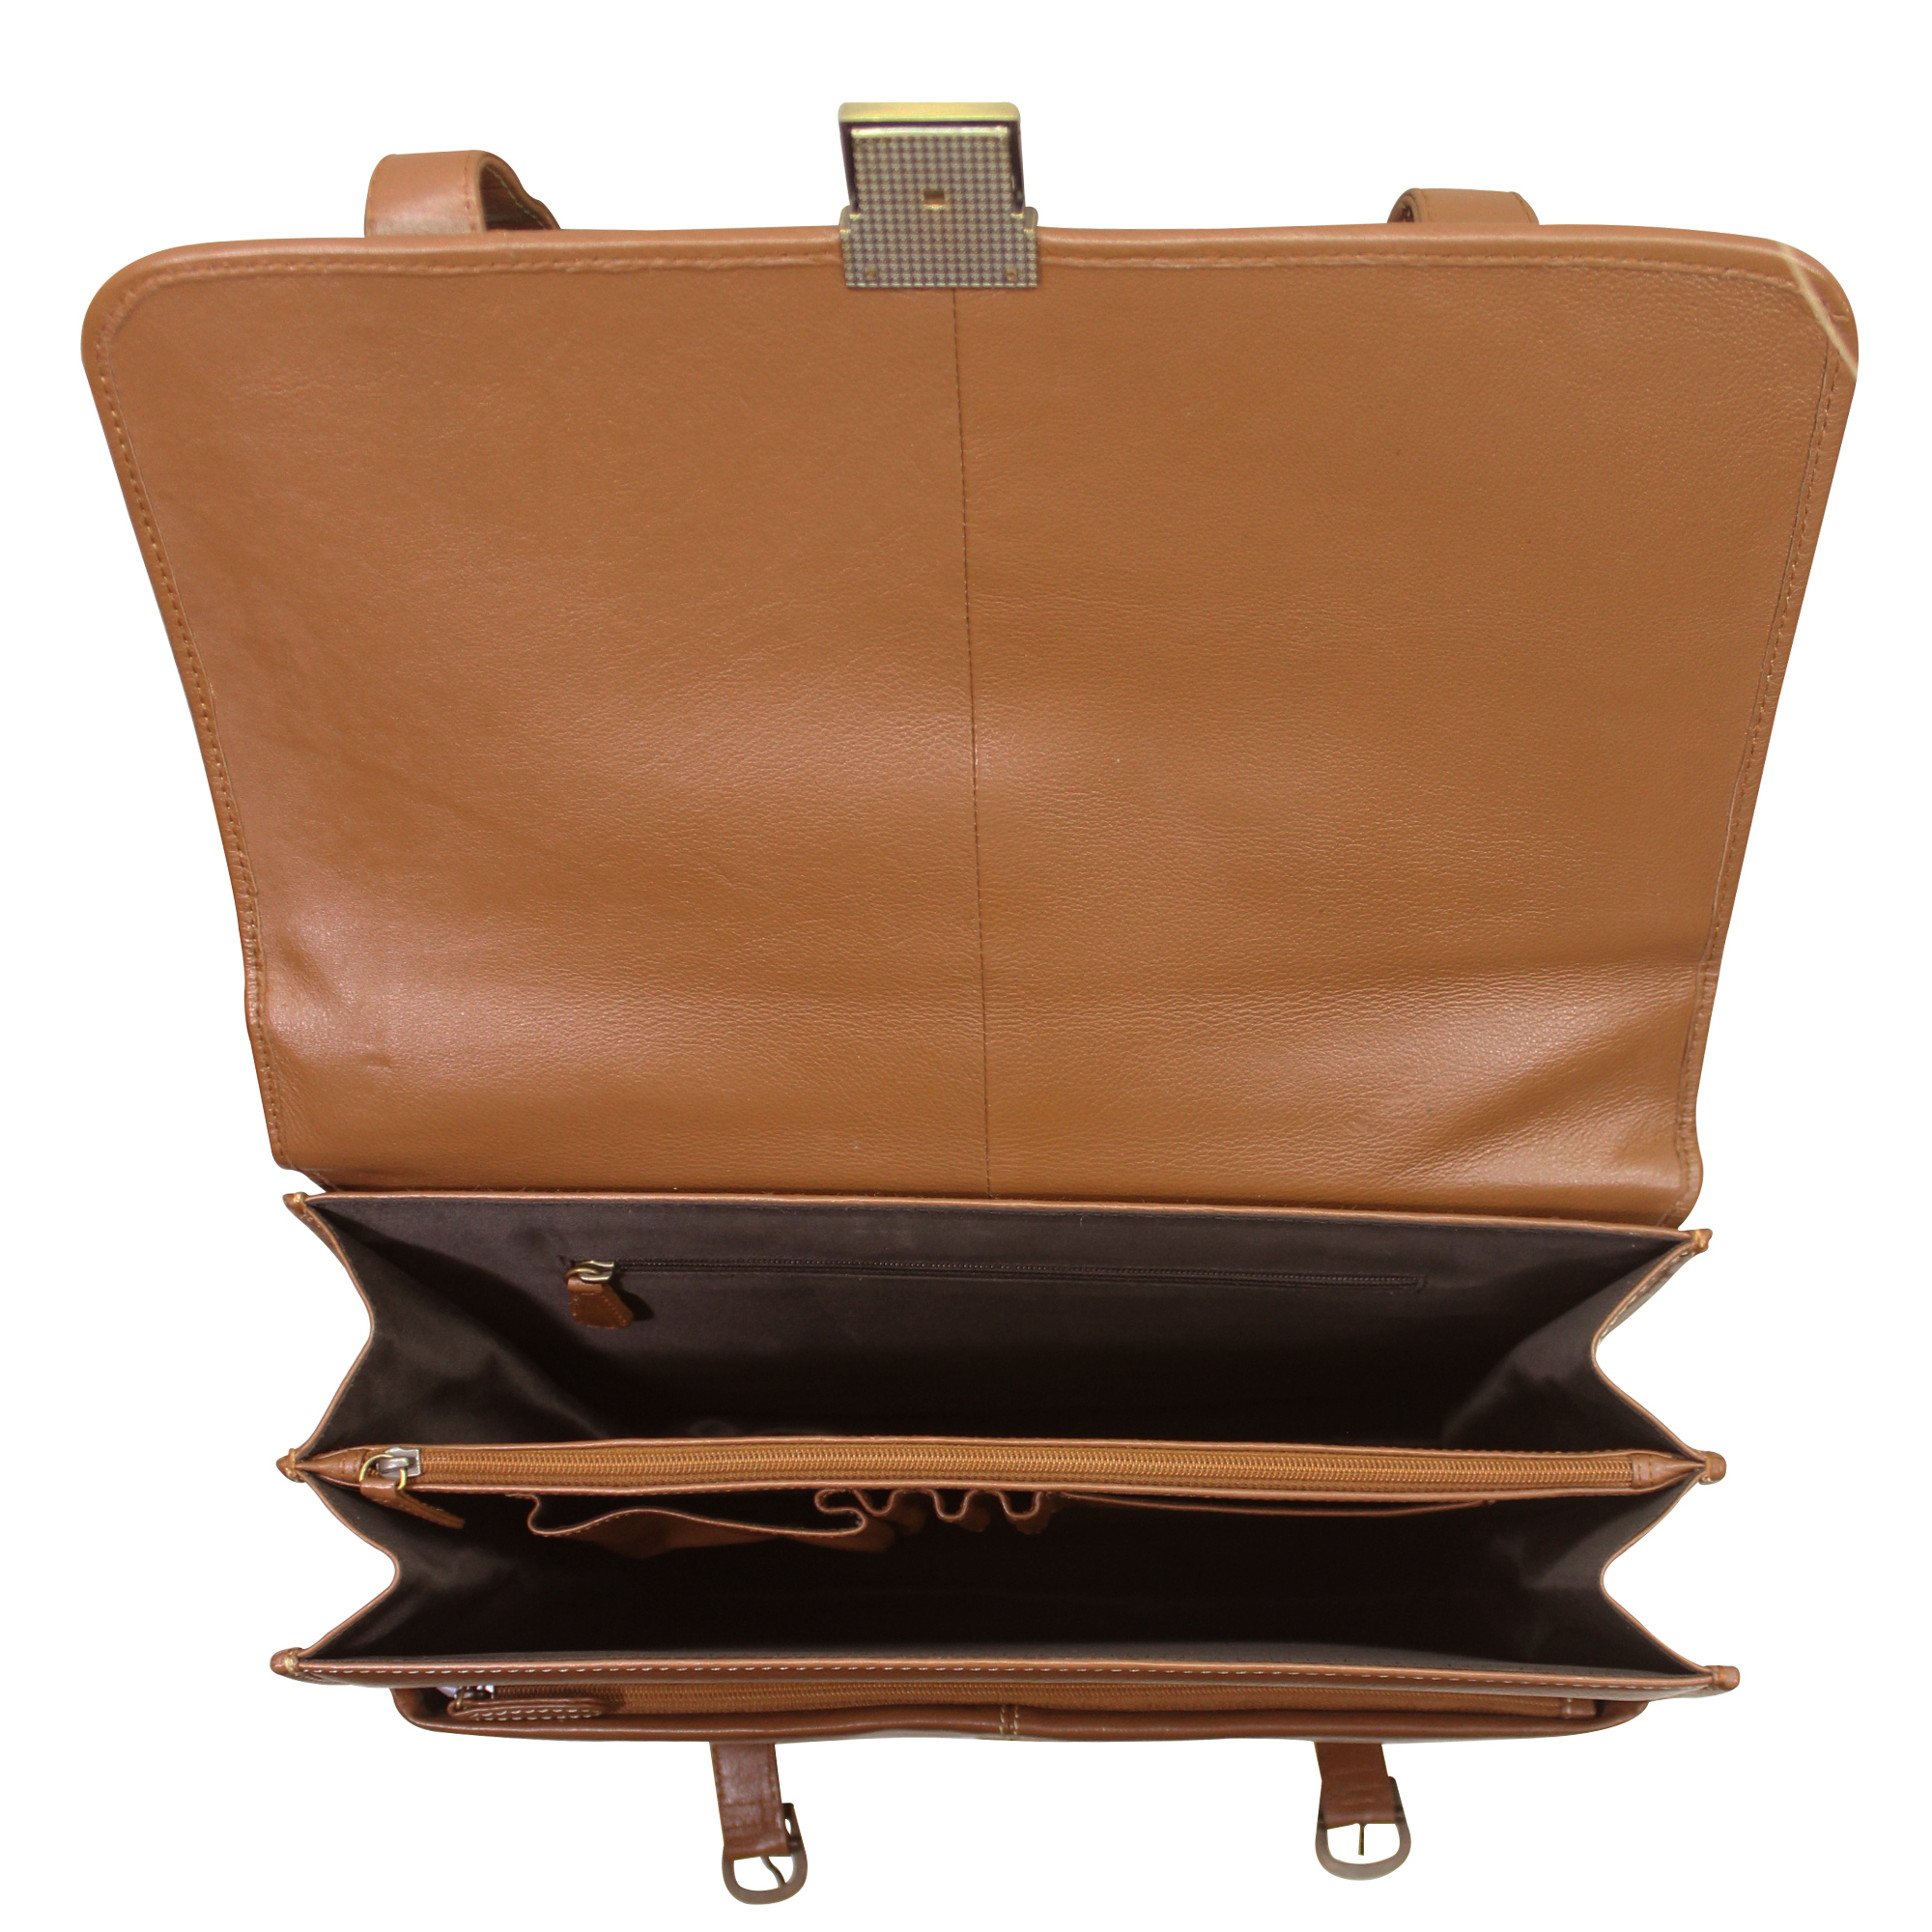 Leather Briefcase Office Bag For Men